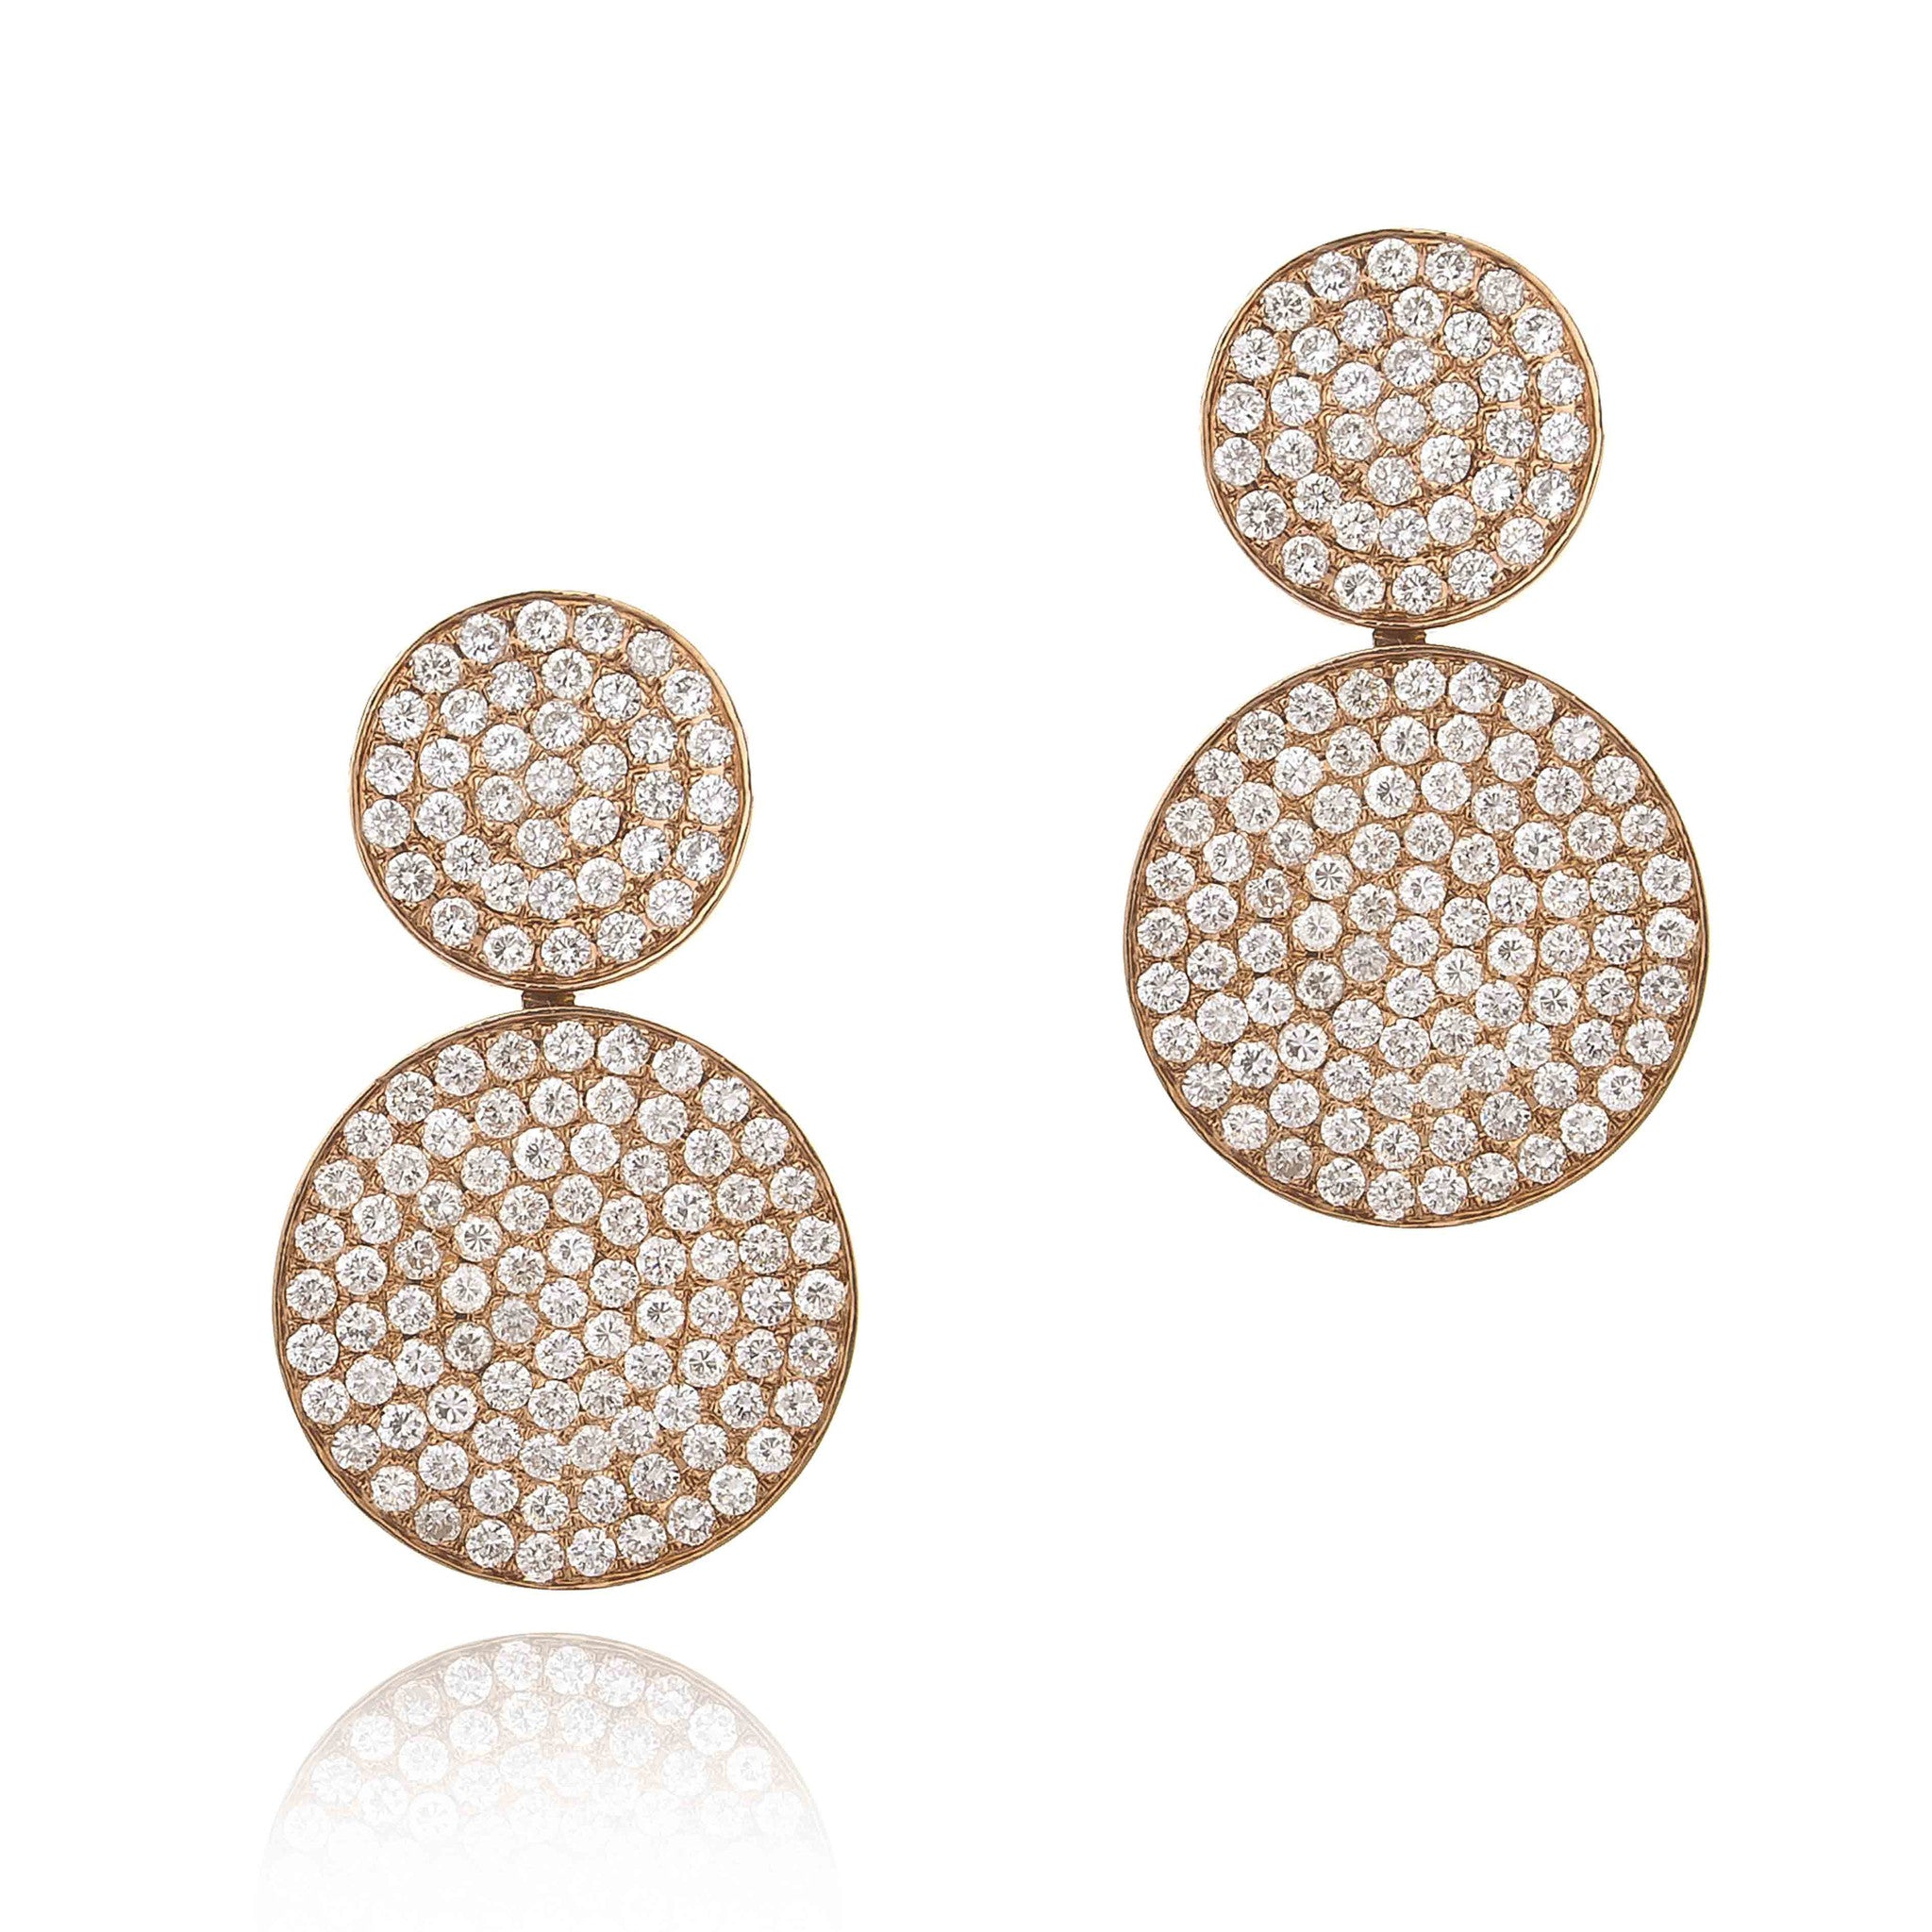 Large Round on Round Earrings